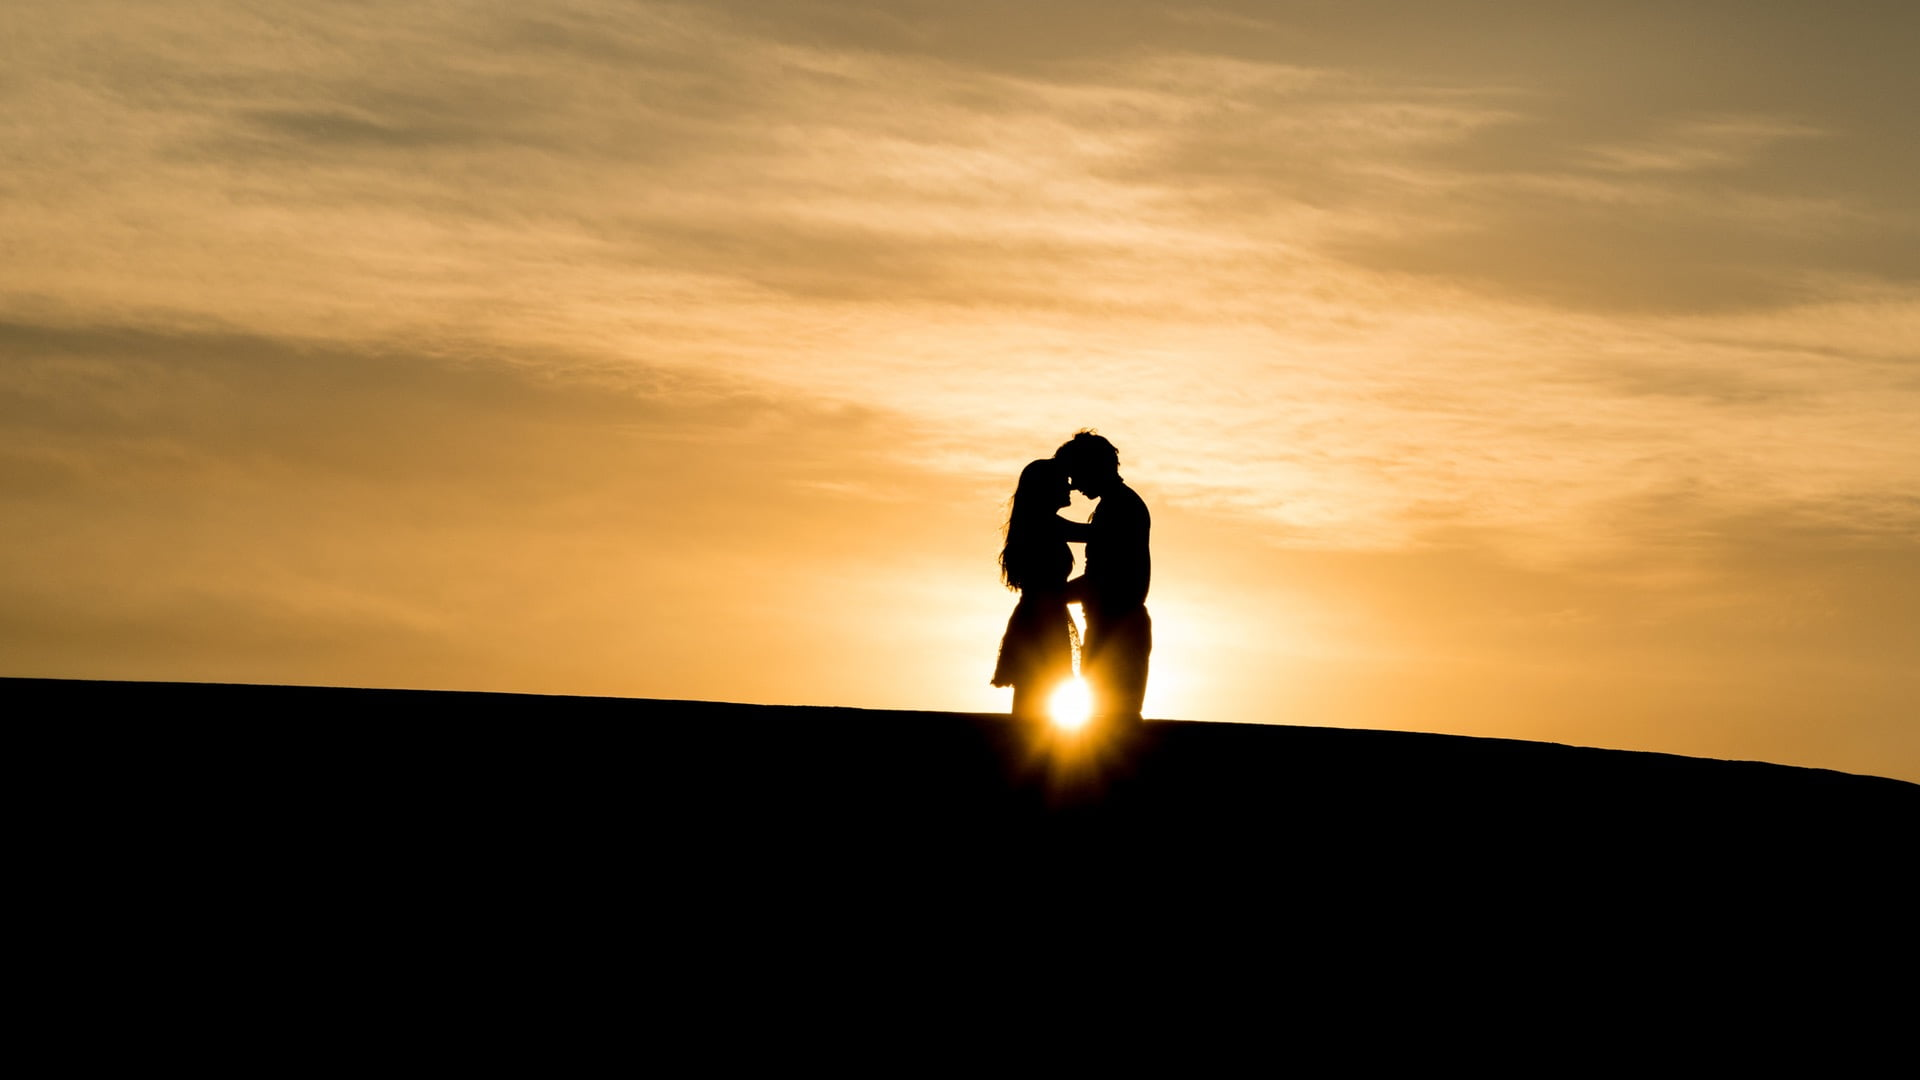 love silhouette of couple in a sunset view 1 1 青梅竹馬|子明小說